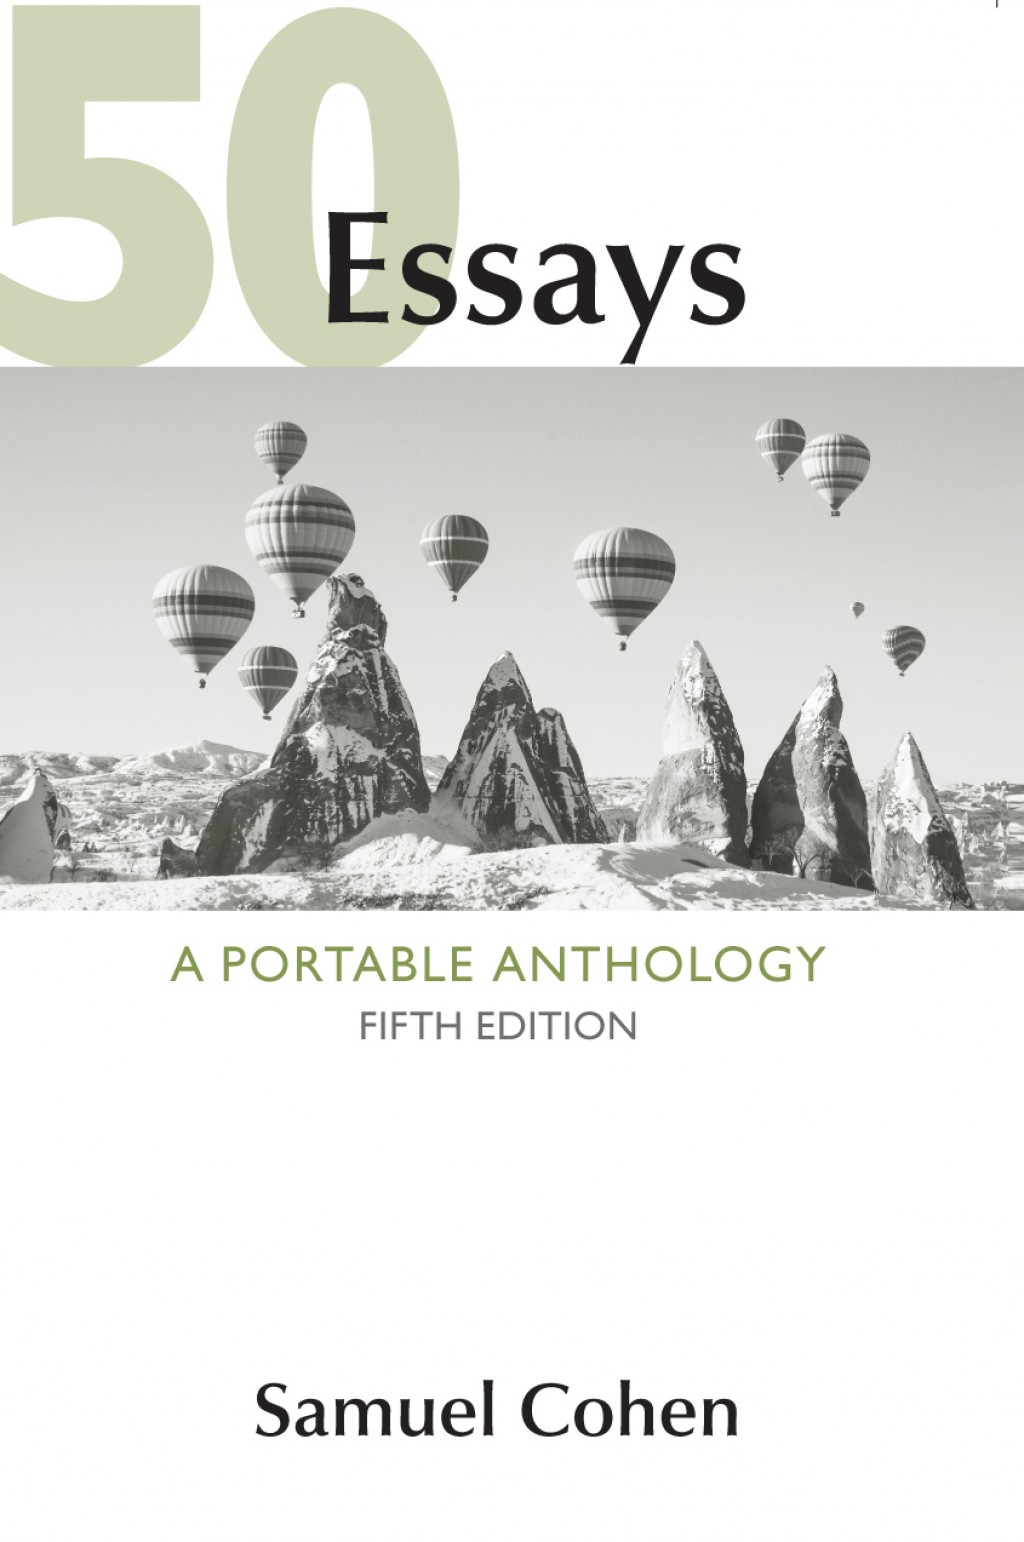 008 Essays Essay Example Shocking 50 A Portable Anthology 4th Edition Answers Pdf Free Samuel Cohen Large